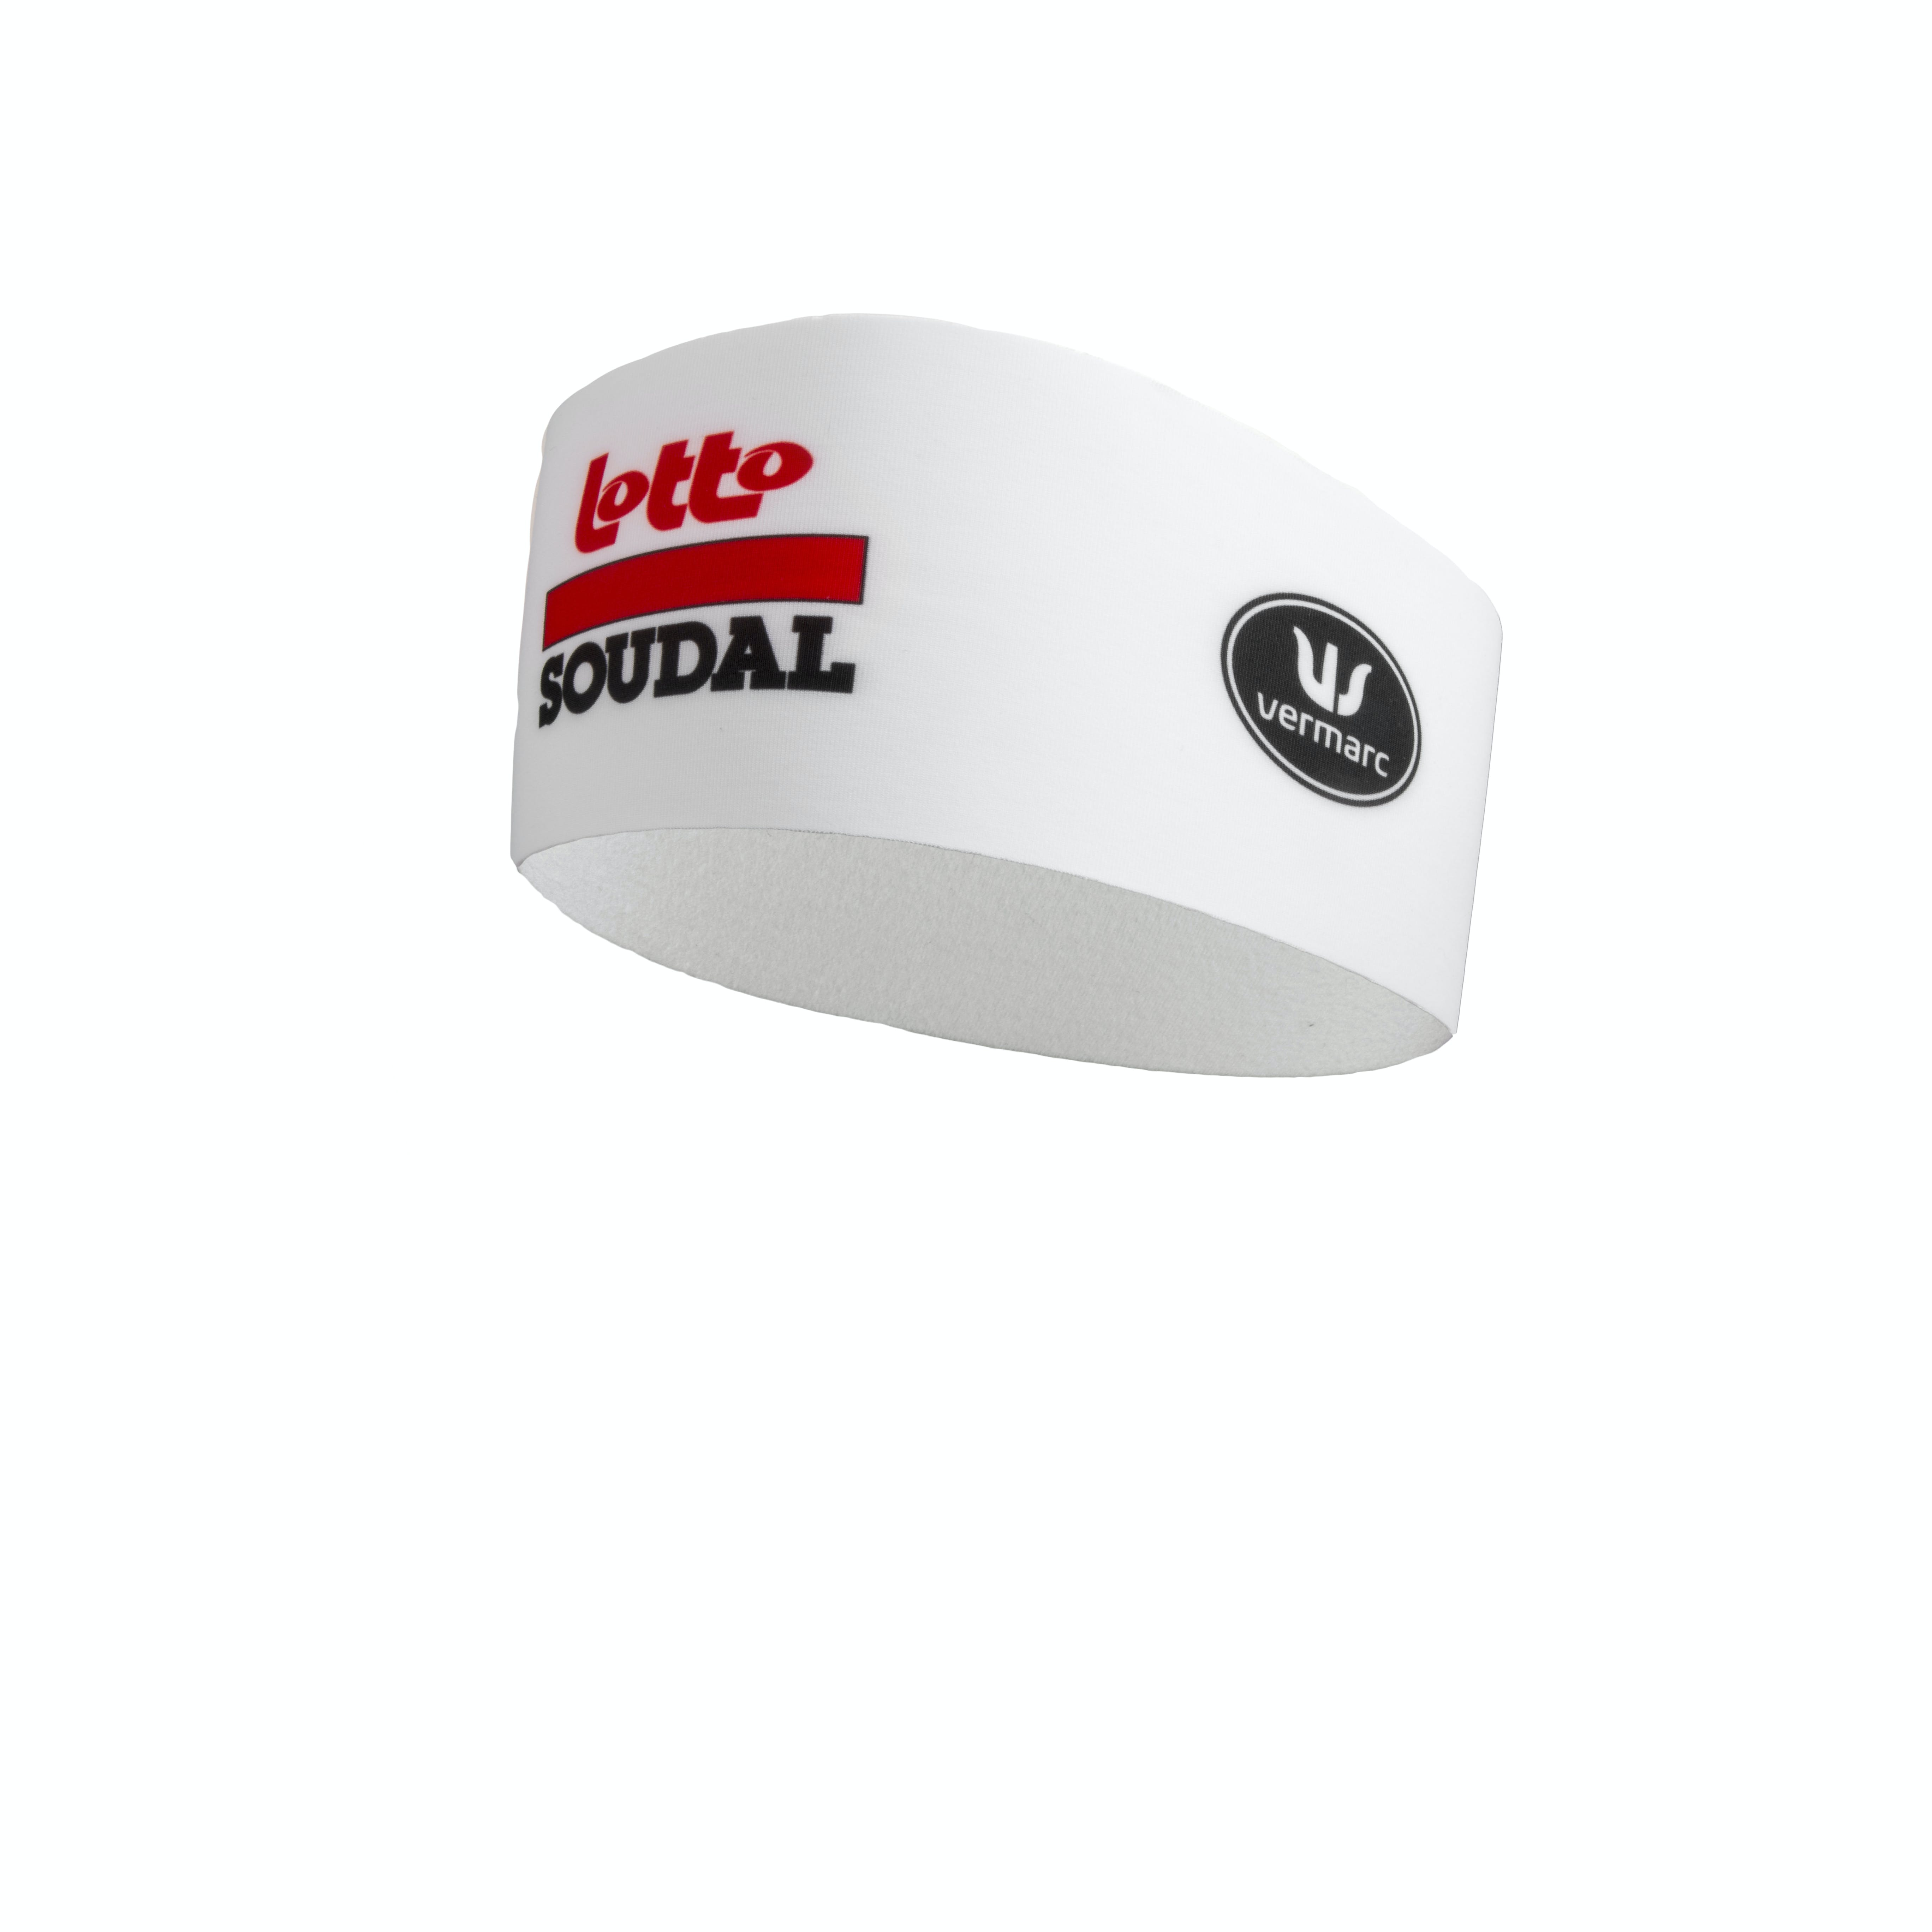 Lotto Soudal 2019 Haarband